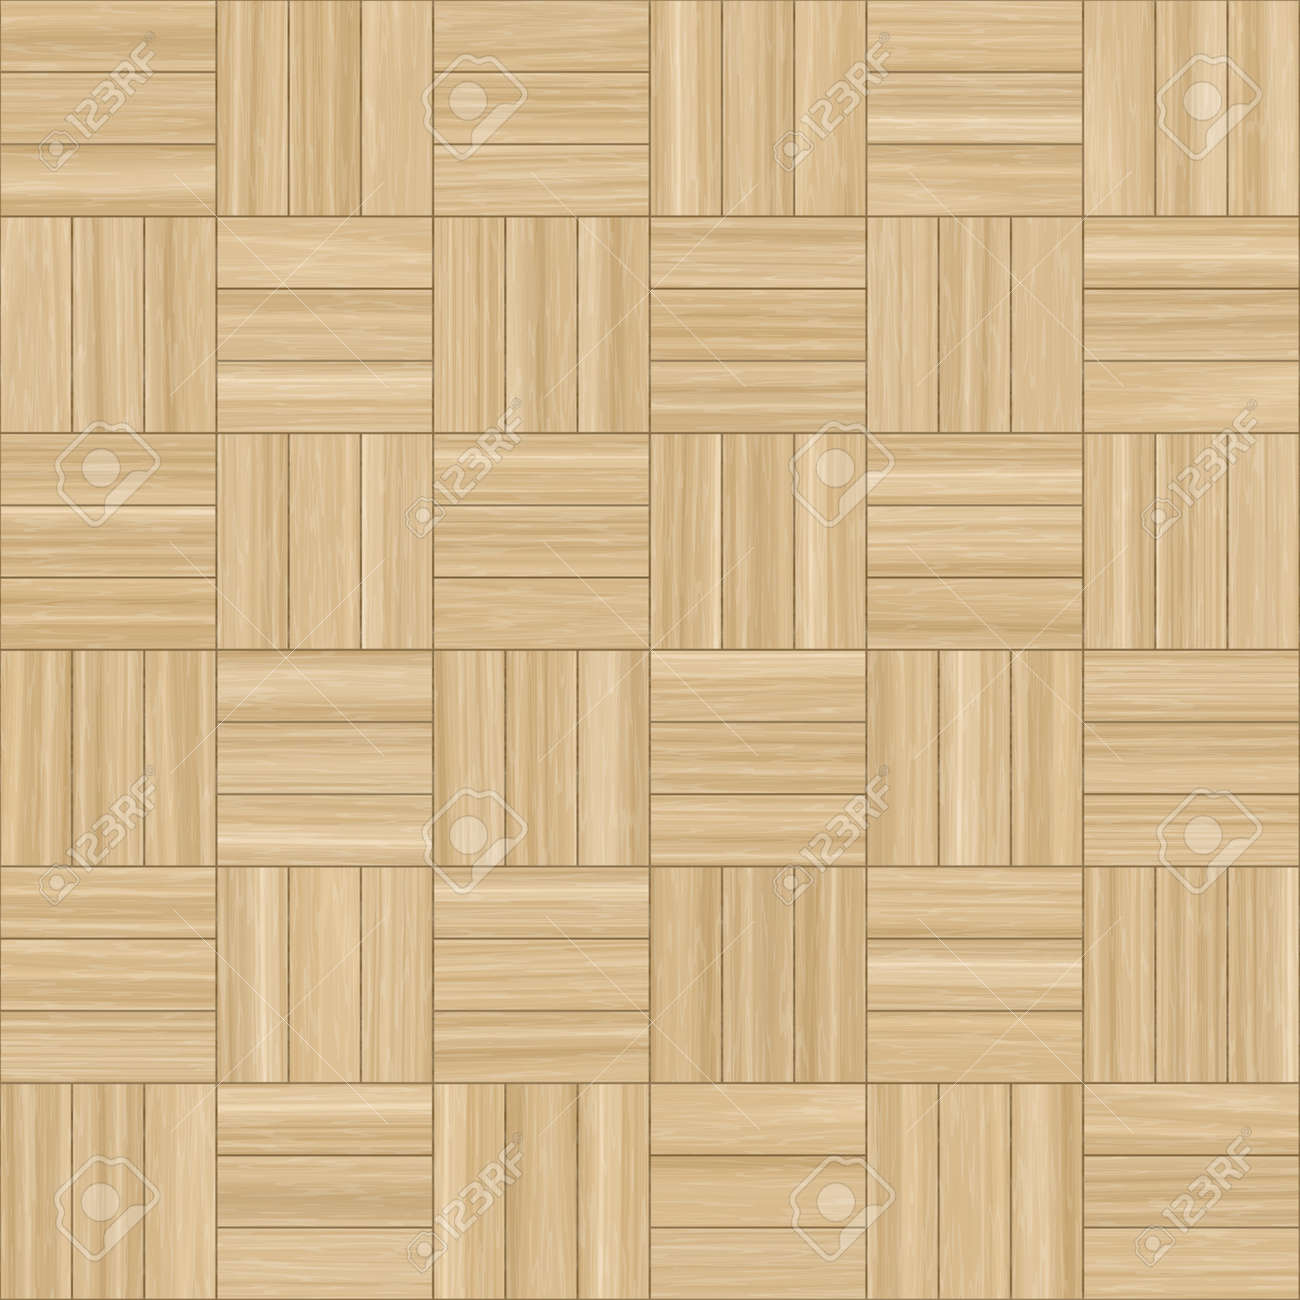 Exceptionnel Parquet Wood Flooring Seamless Texture Tile Stock Photo   13014863